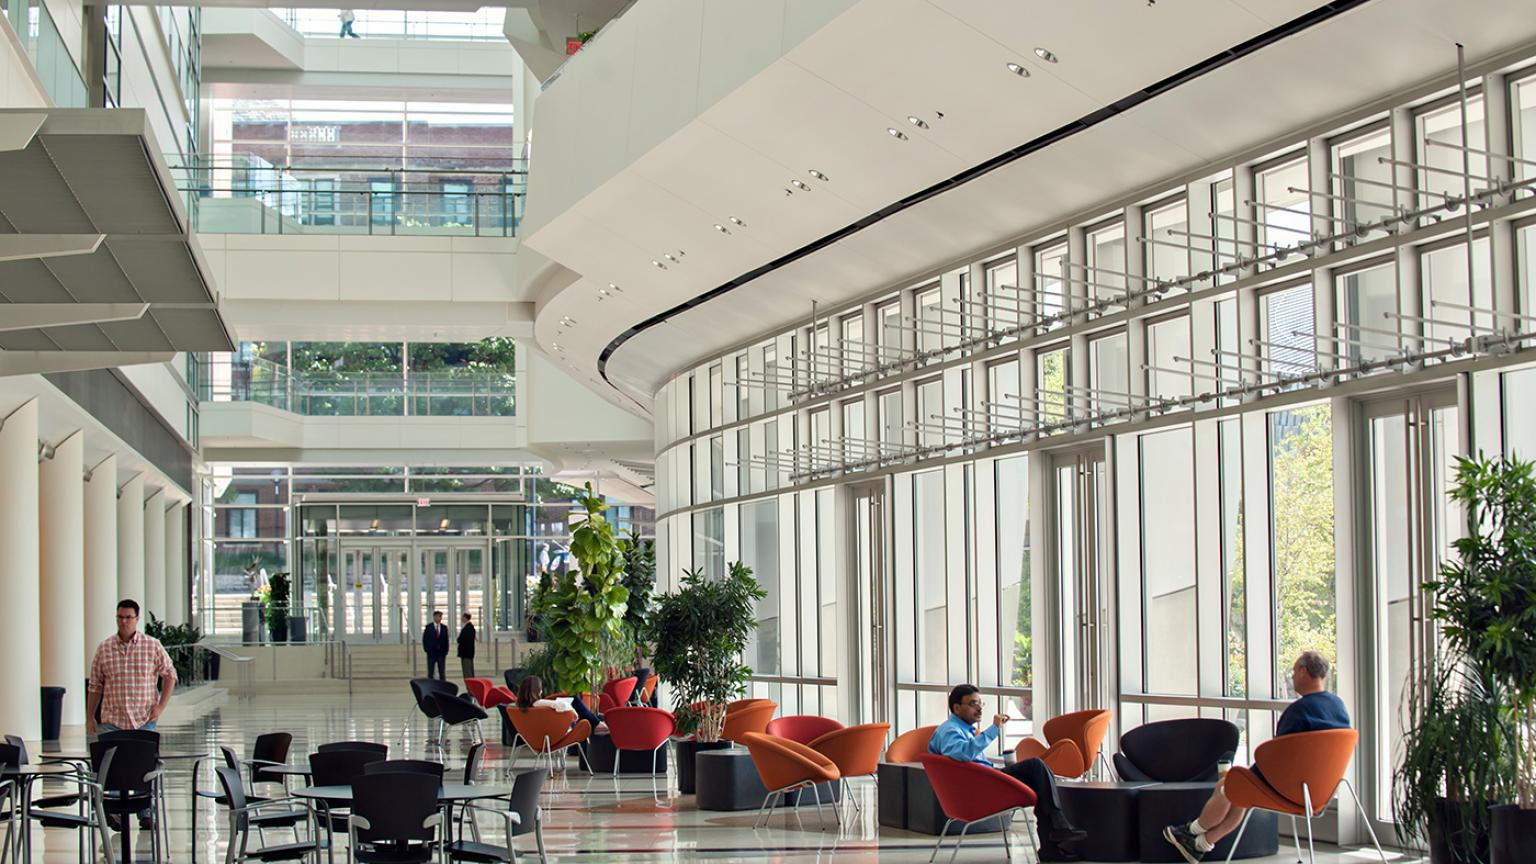 Lobby of Biomedical Sciences Research Building two researchers are sitting and talking in the sun filled lobby